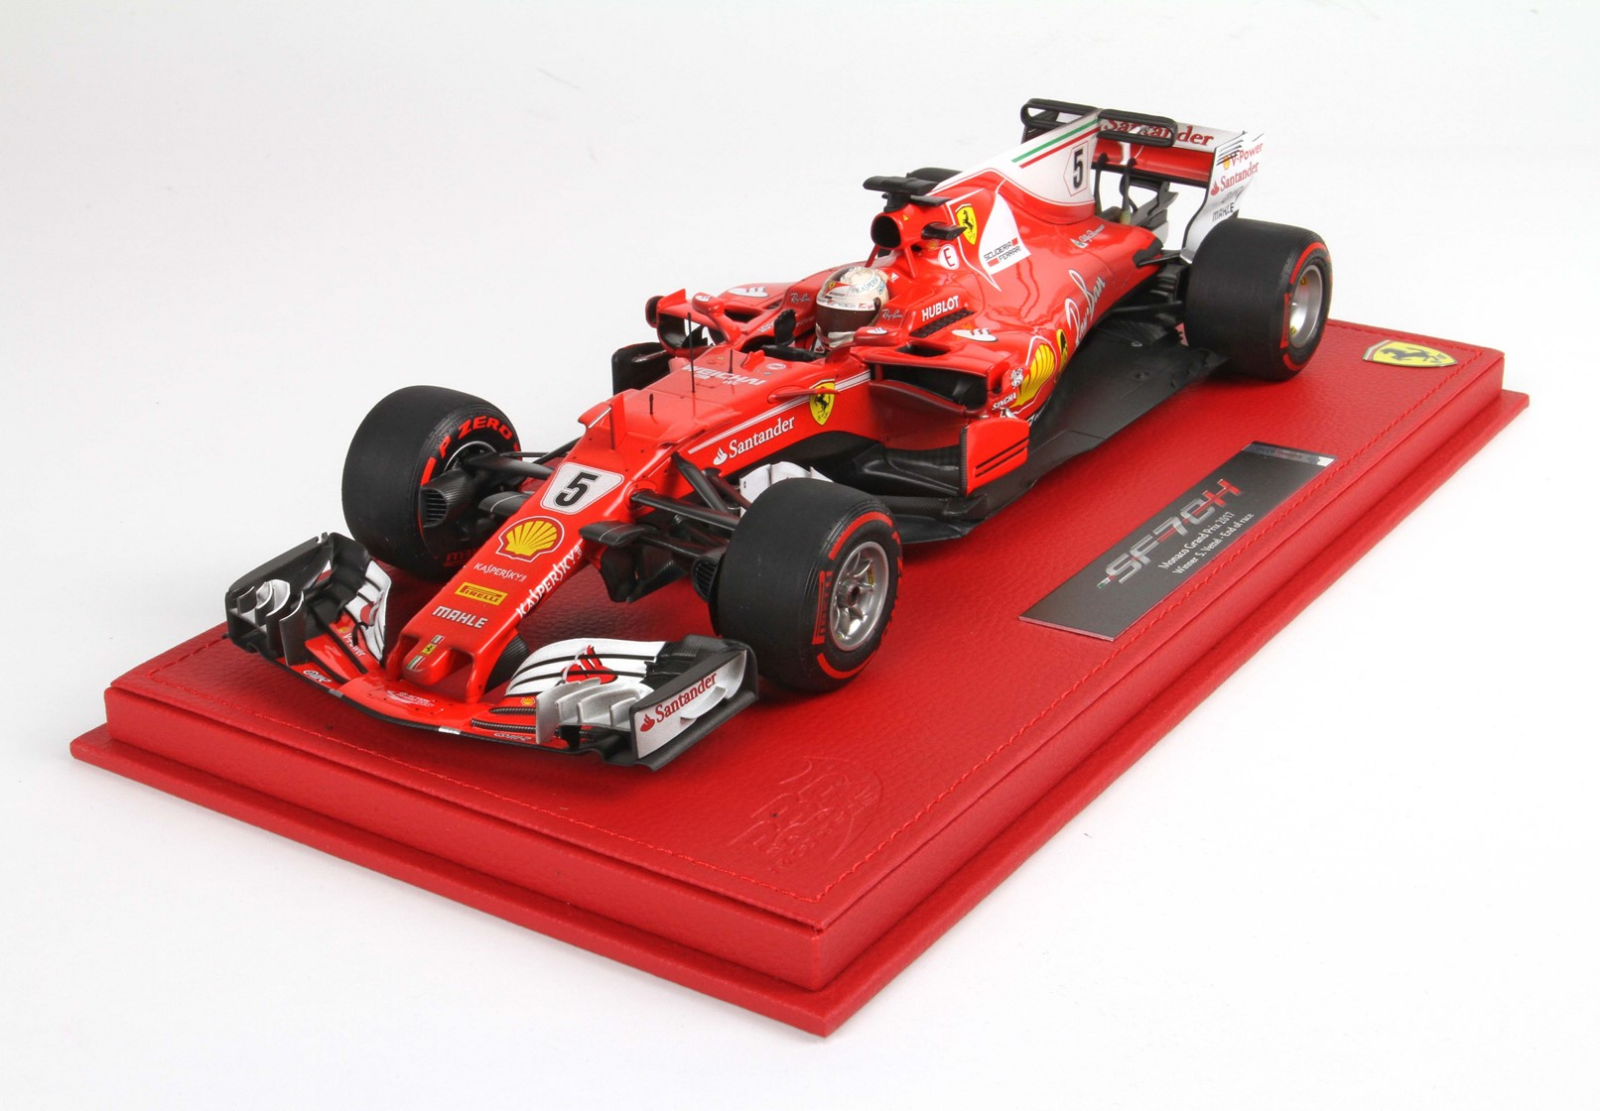 BBR 2017 Ferrari SF70-H 1:18  5 Sebatian Vettel end of race LE 50 pcs